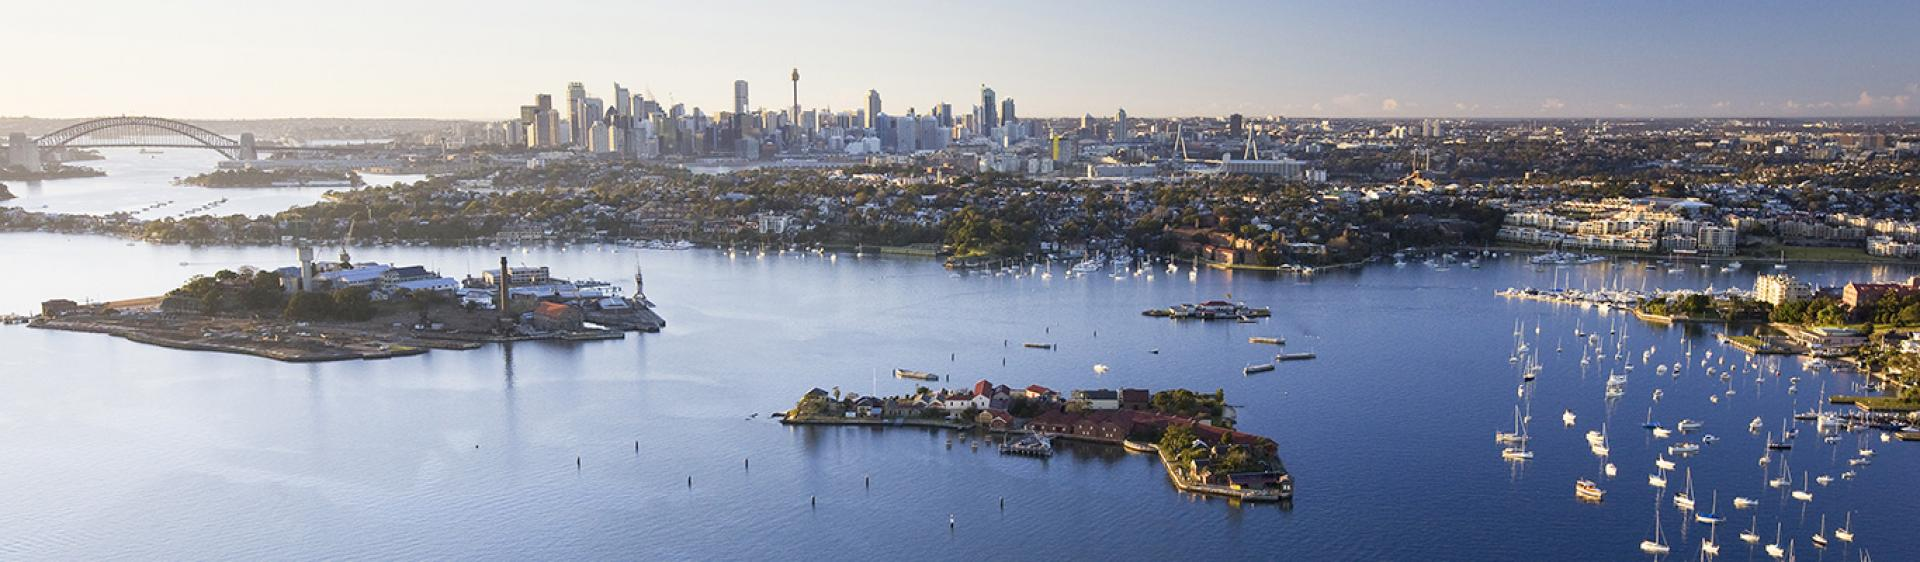 Sydney Harbour Islands